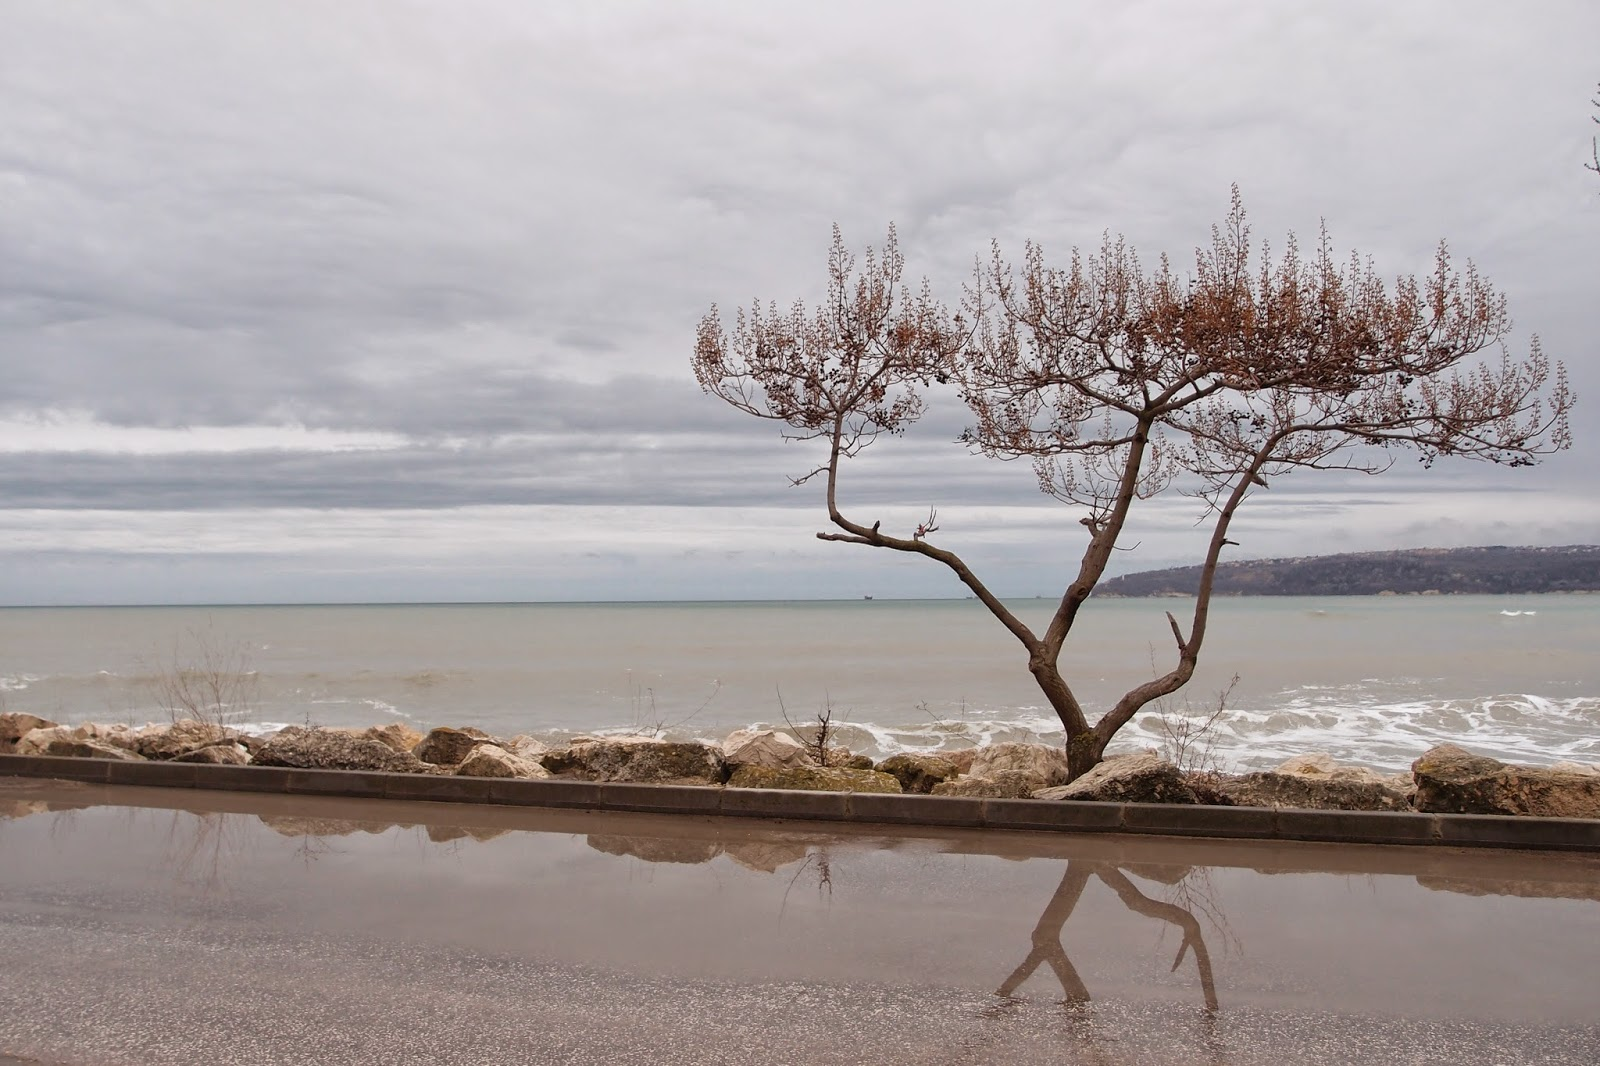 My favorite tree by the sea